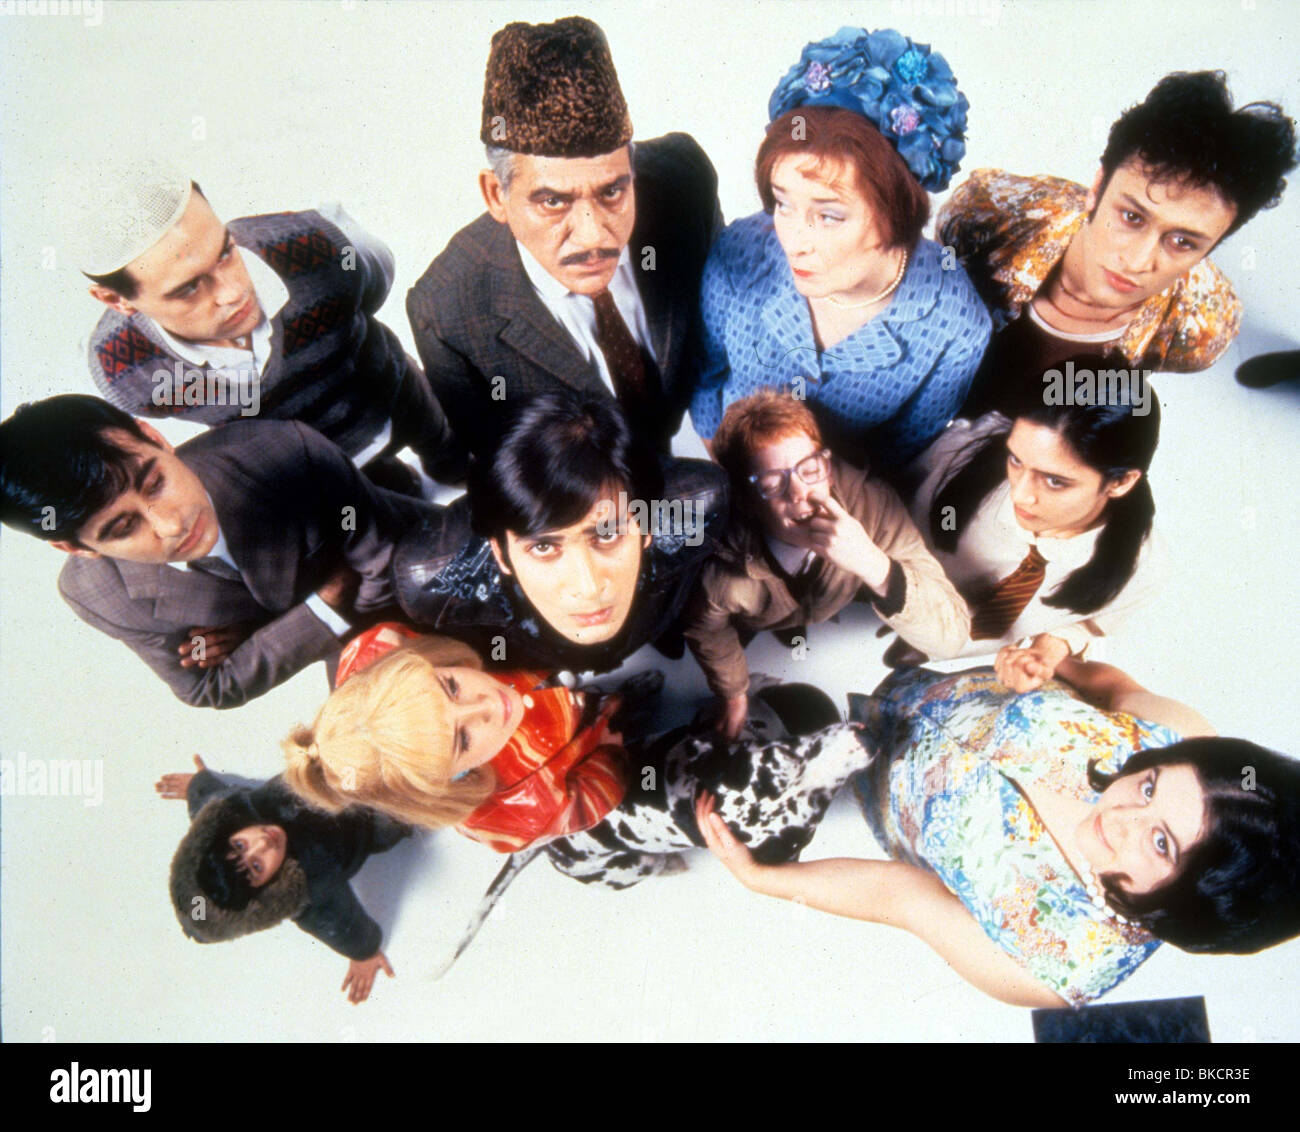 EAST IS EAST (1999) RAJI JAMES, EMIL MARWA, JORDAN ROUTLEDGE, EMMA RYDAL, JIMI MISTRY, OM PURI, GARY DAMER, LINDA - Stock Image